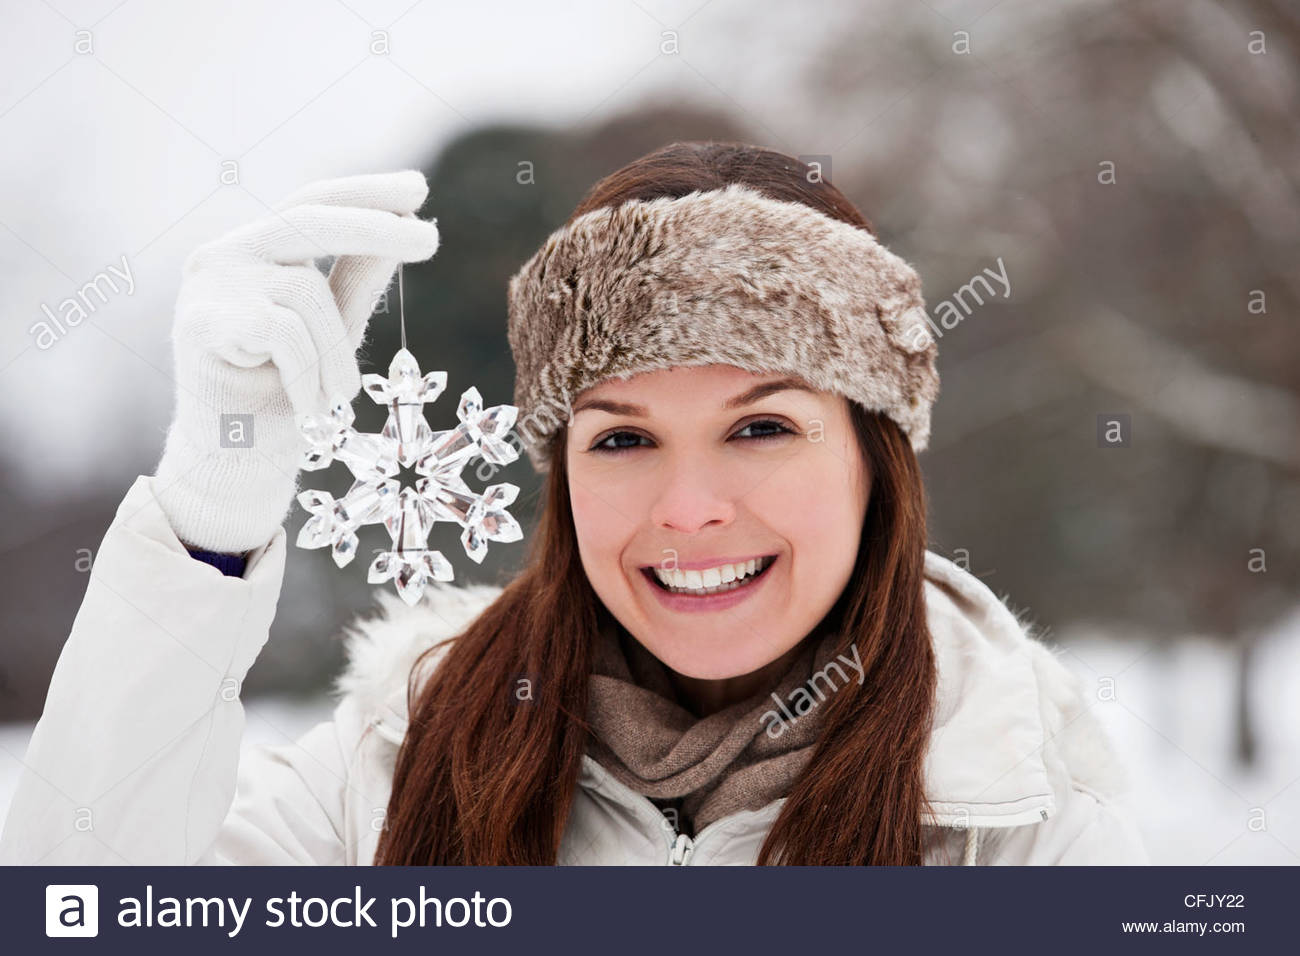 A young woman holding a snowflake decoration - Stock Image